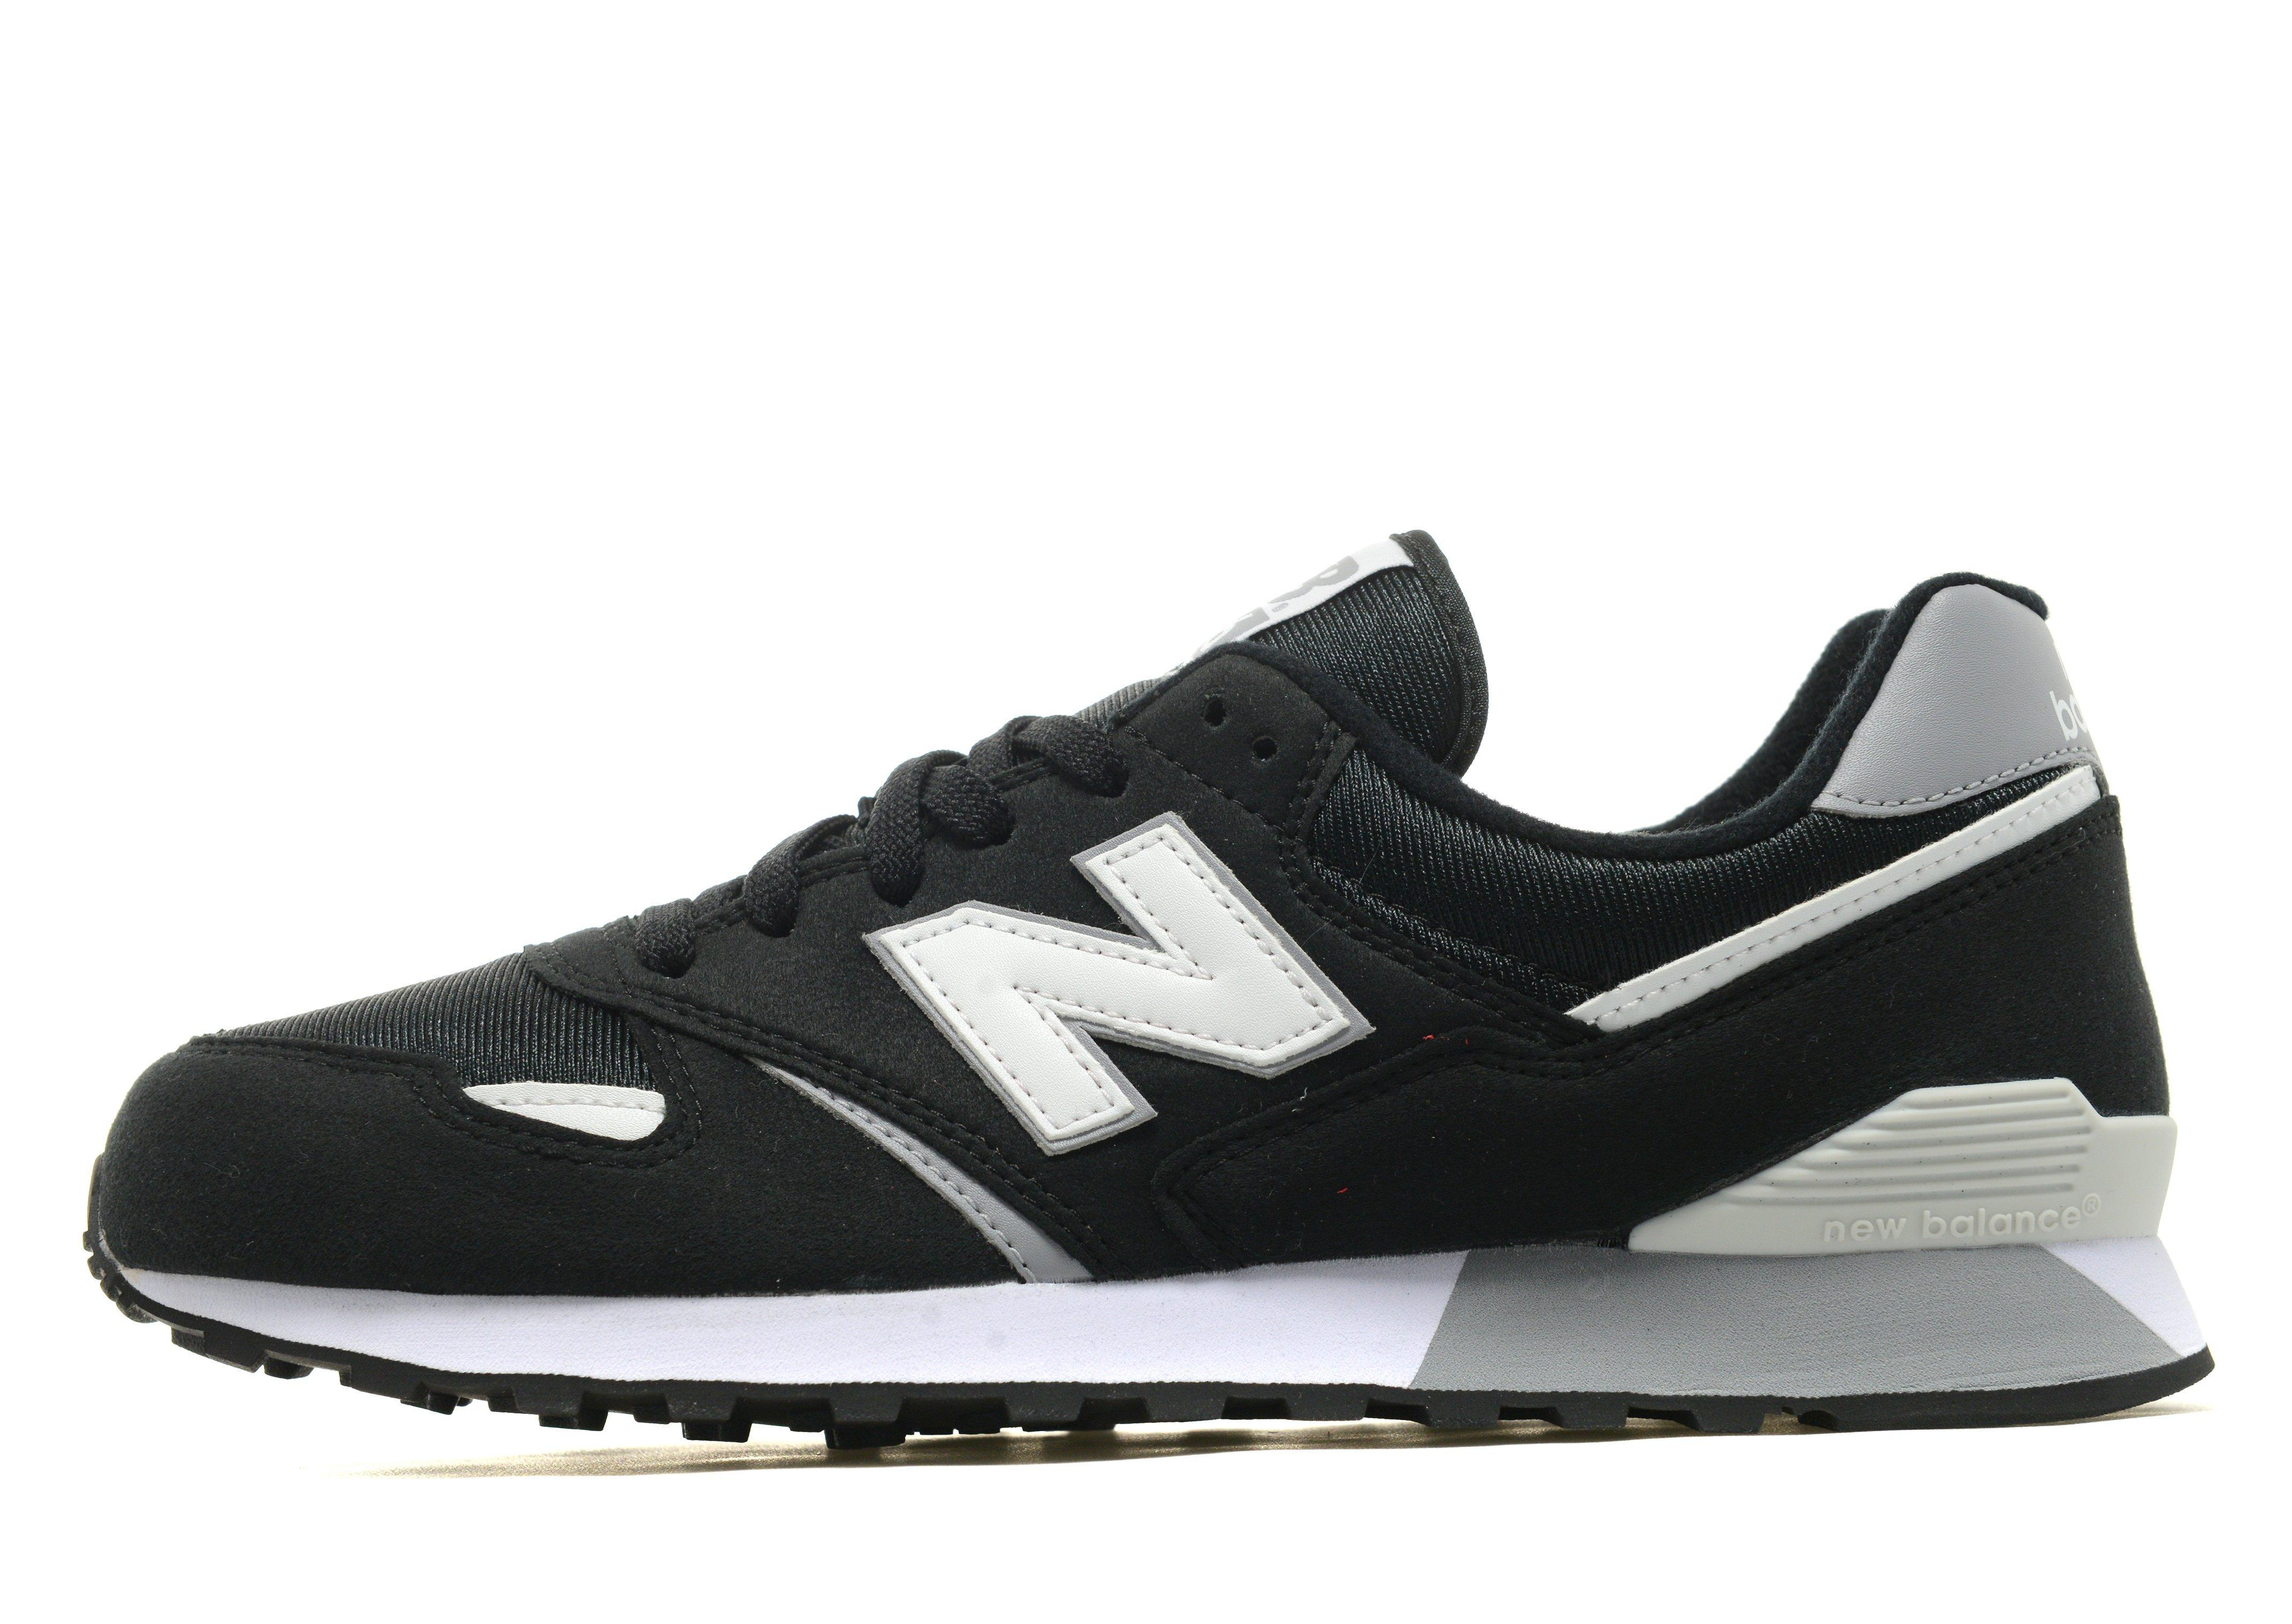 New Balance Lace 446 in Black/White/Grey (Black) for Men - Lyst